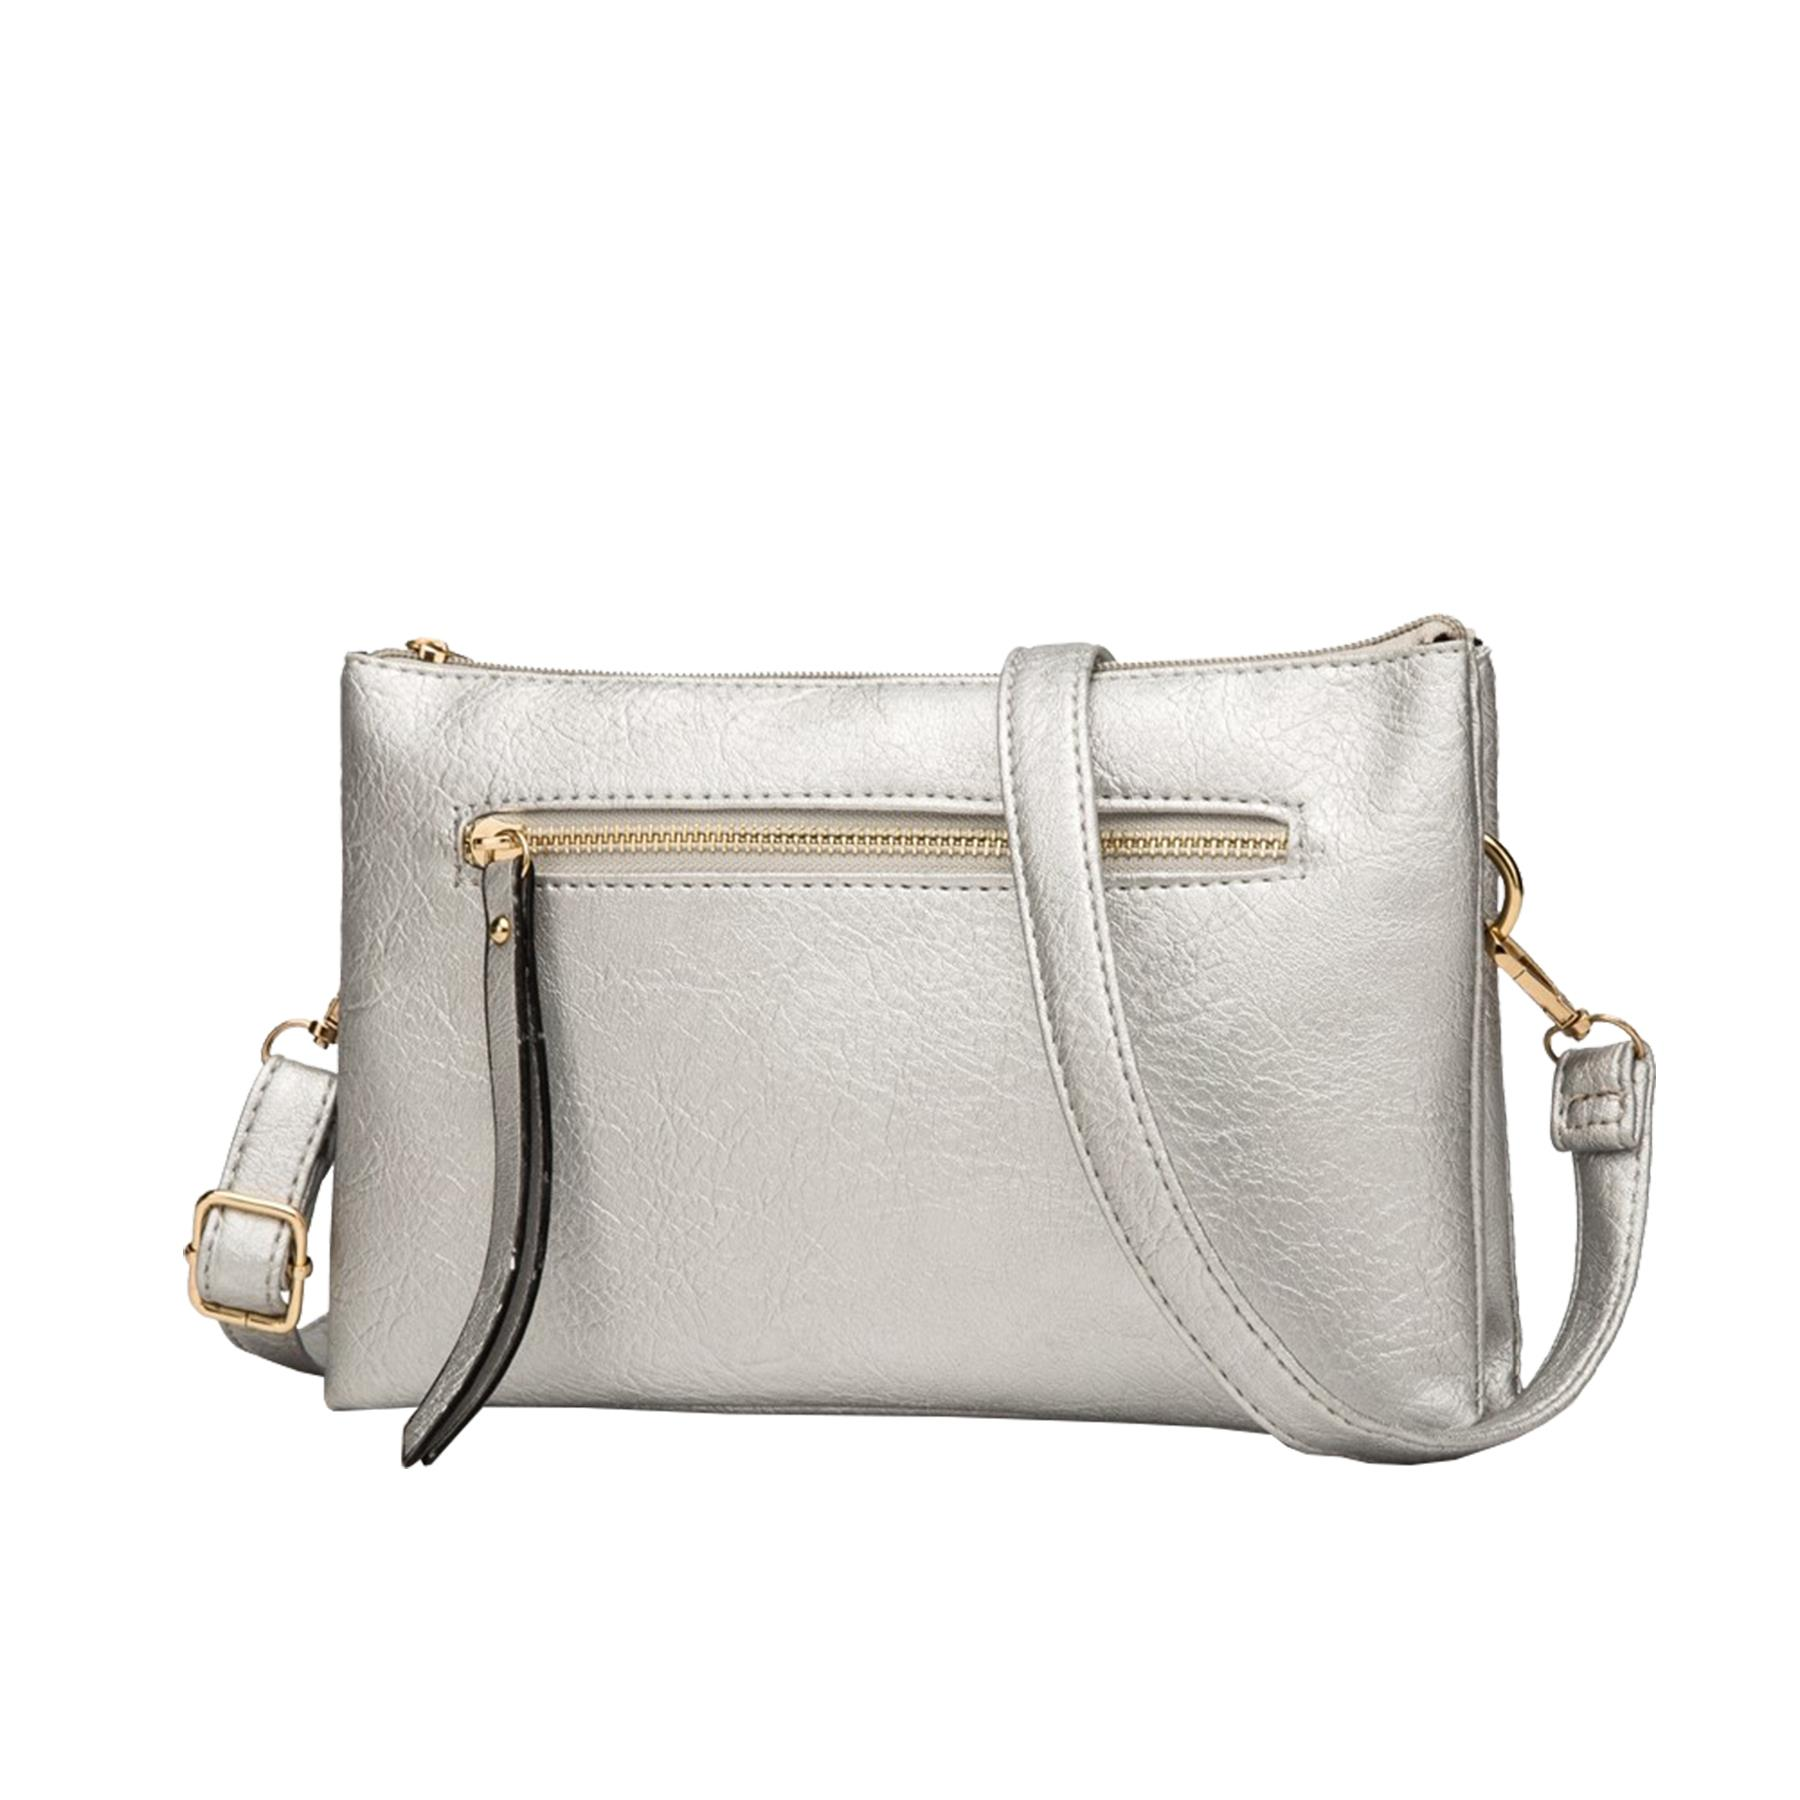 New-Plain-Synthetic-Leather-Women-s-Simple-Casual-Cross-Body-Bag thumbnail 12